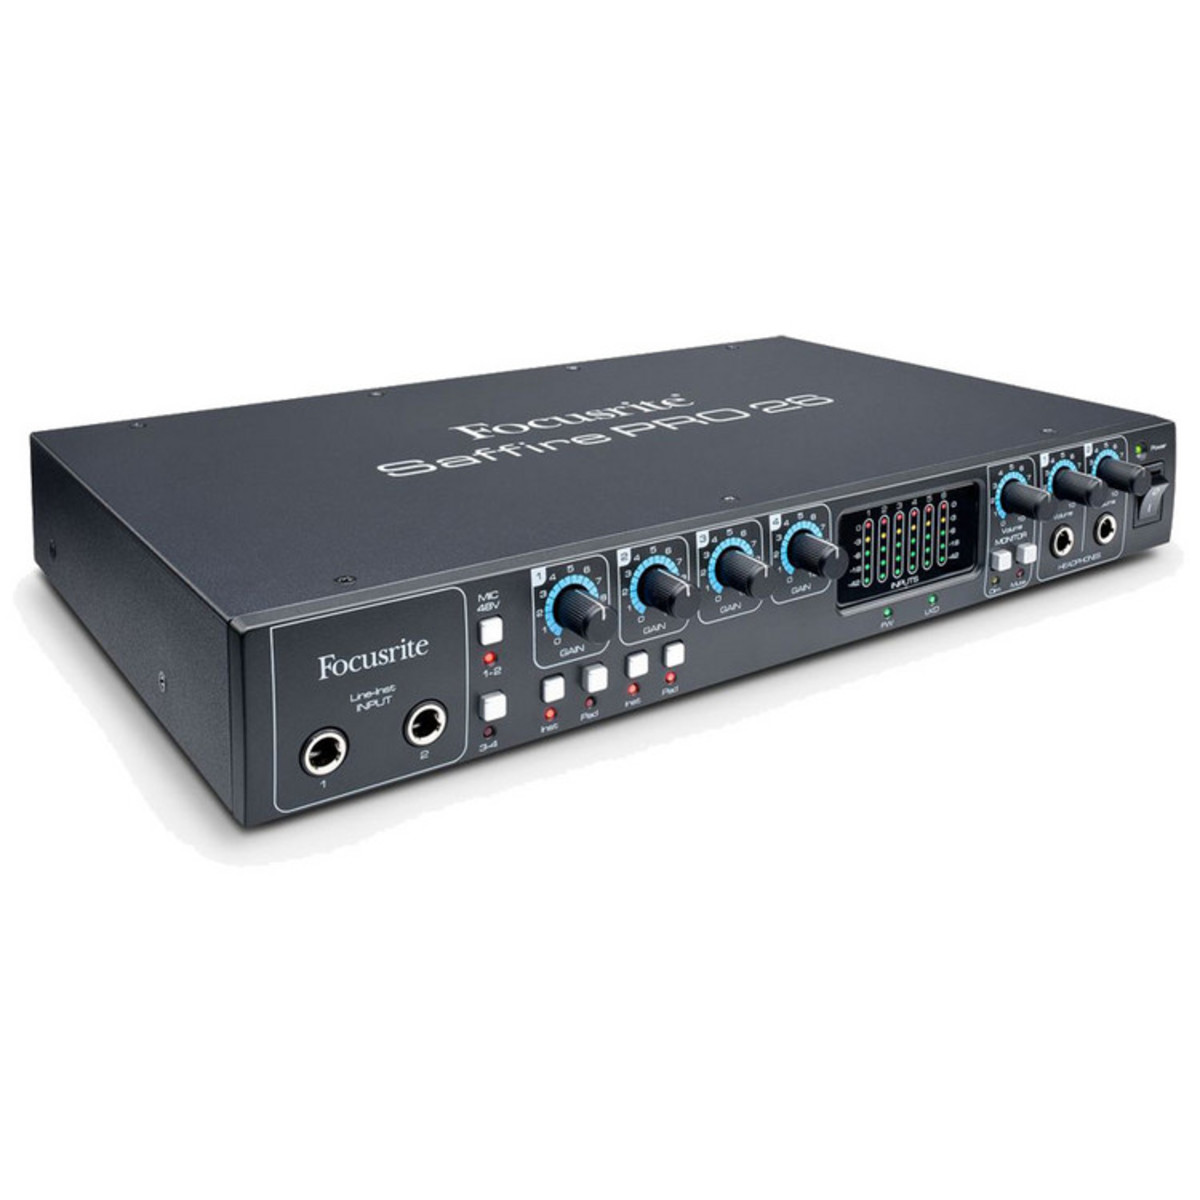 Image of Focusrite Saffire Pro 26 Firewire and Thunderbolt Audio Interface